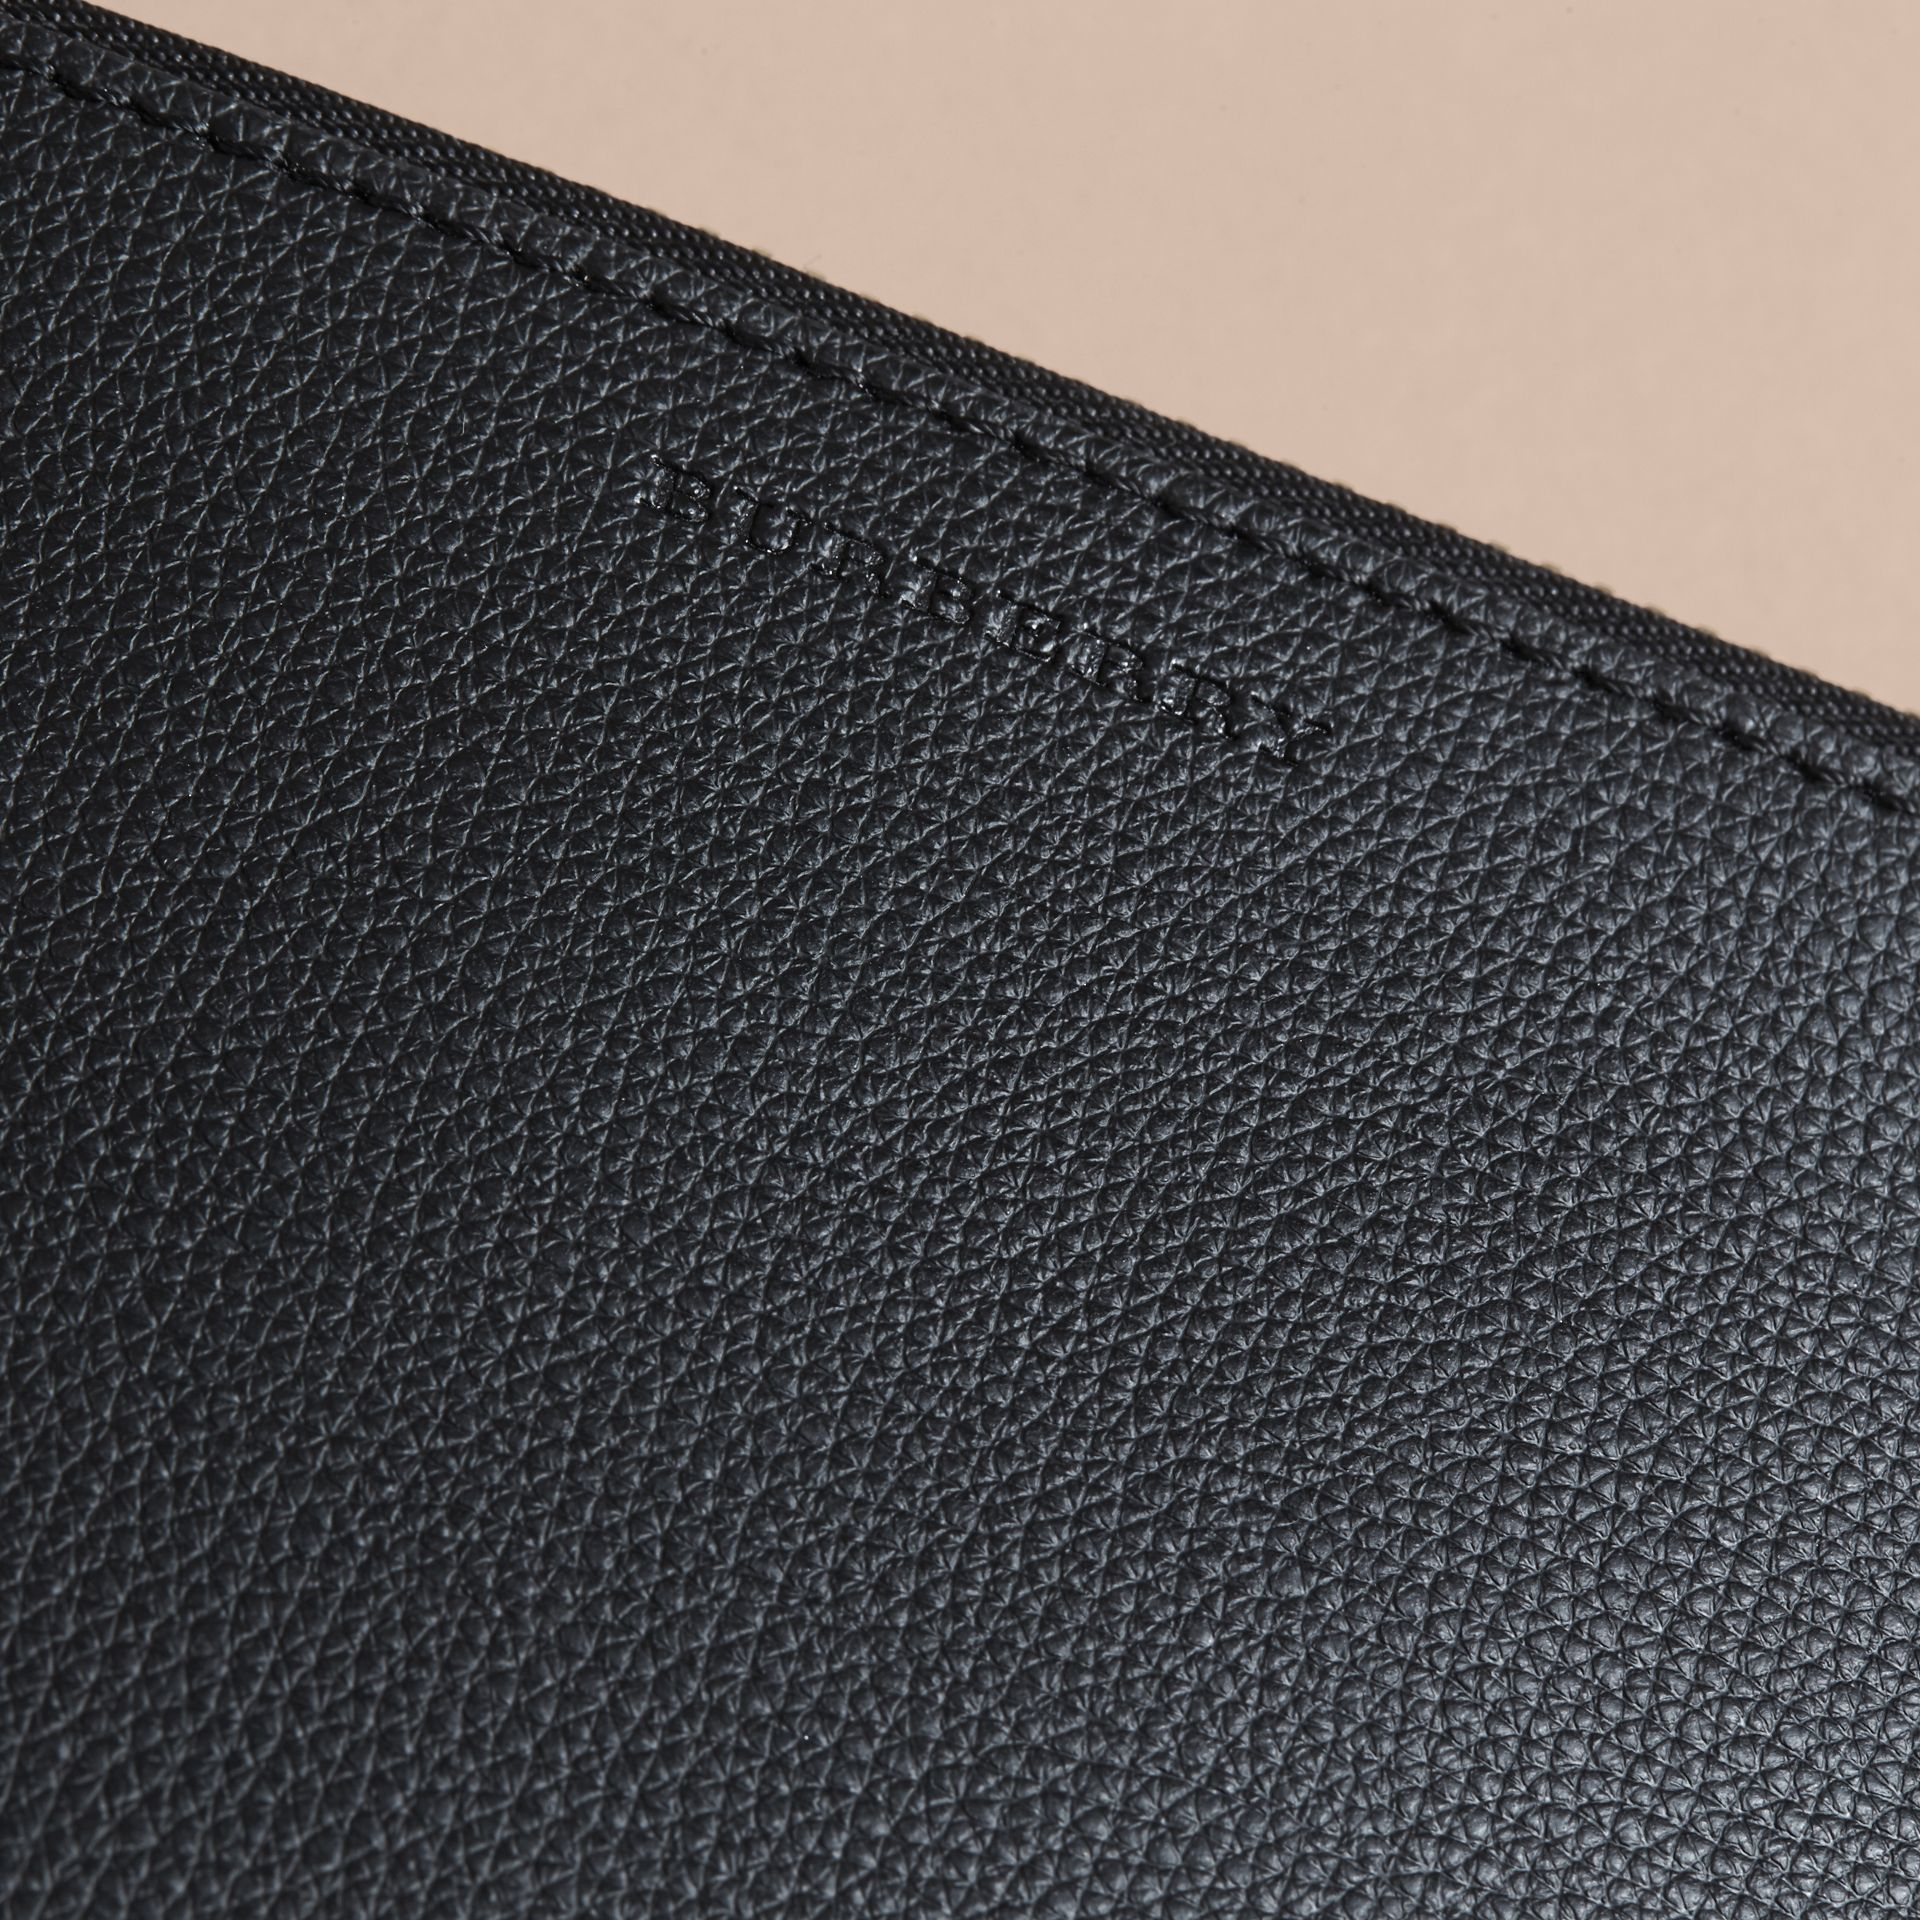 Haymarket Check and Leather Pouch in Black - Women | Burberry - gallery image 2